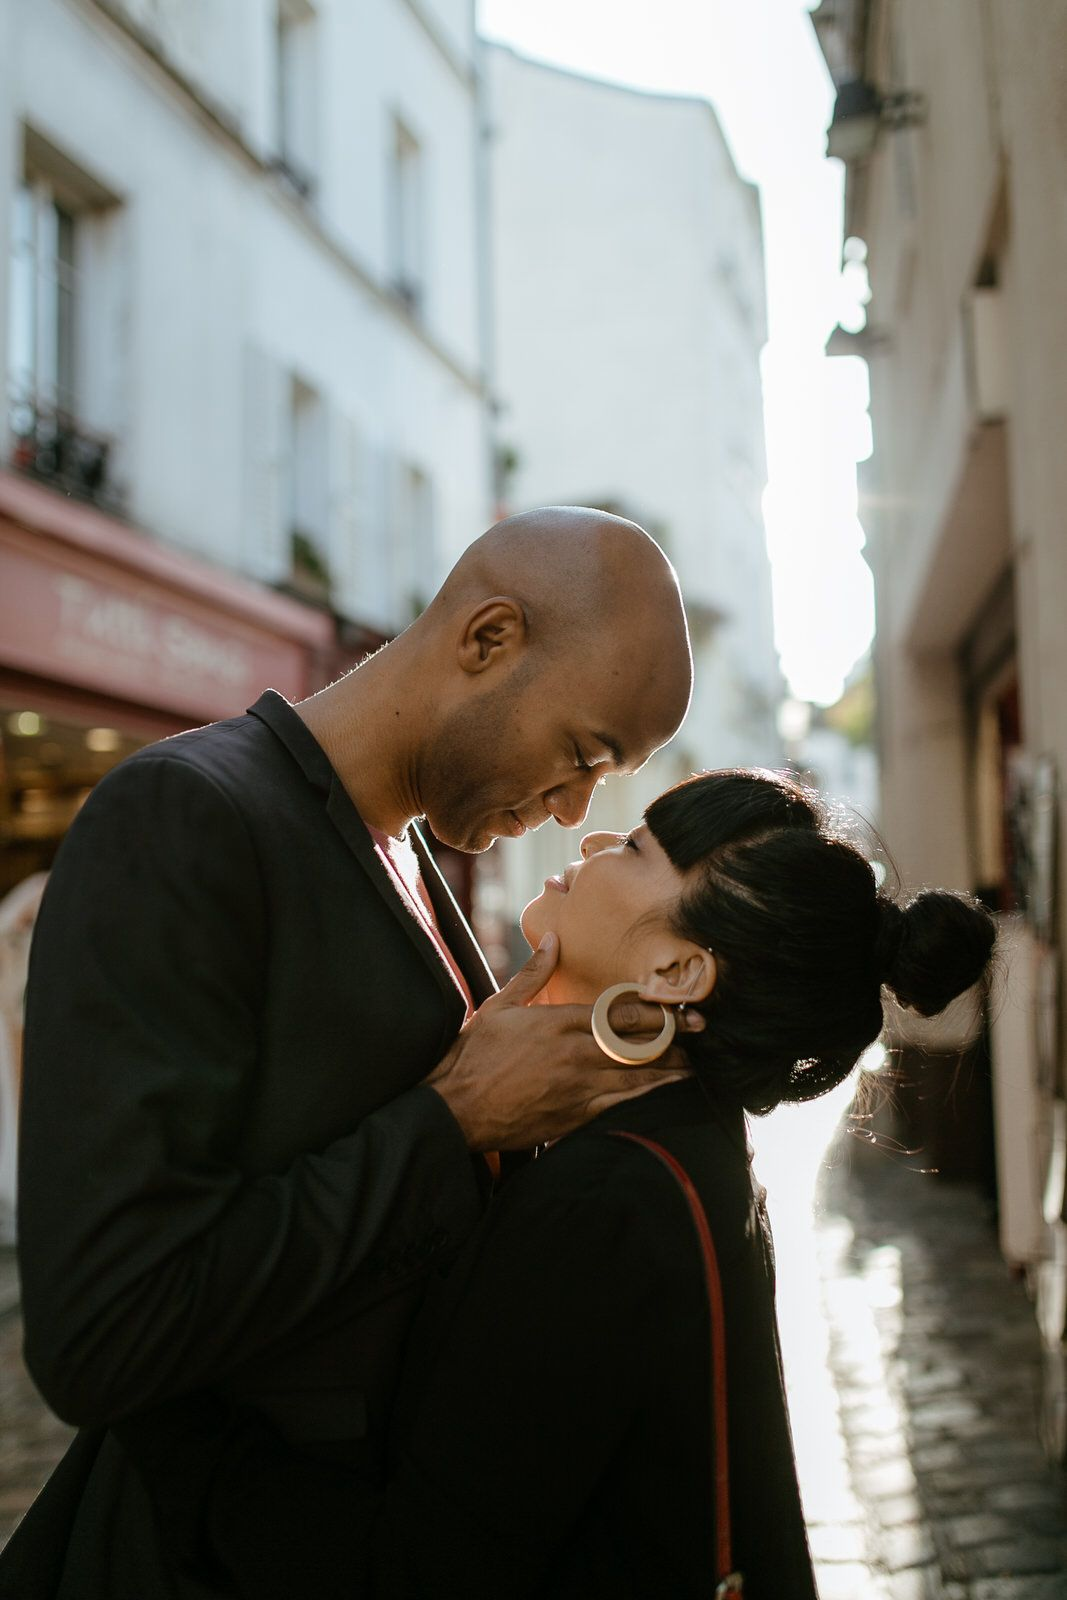 Paris engagement photo shoot